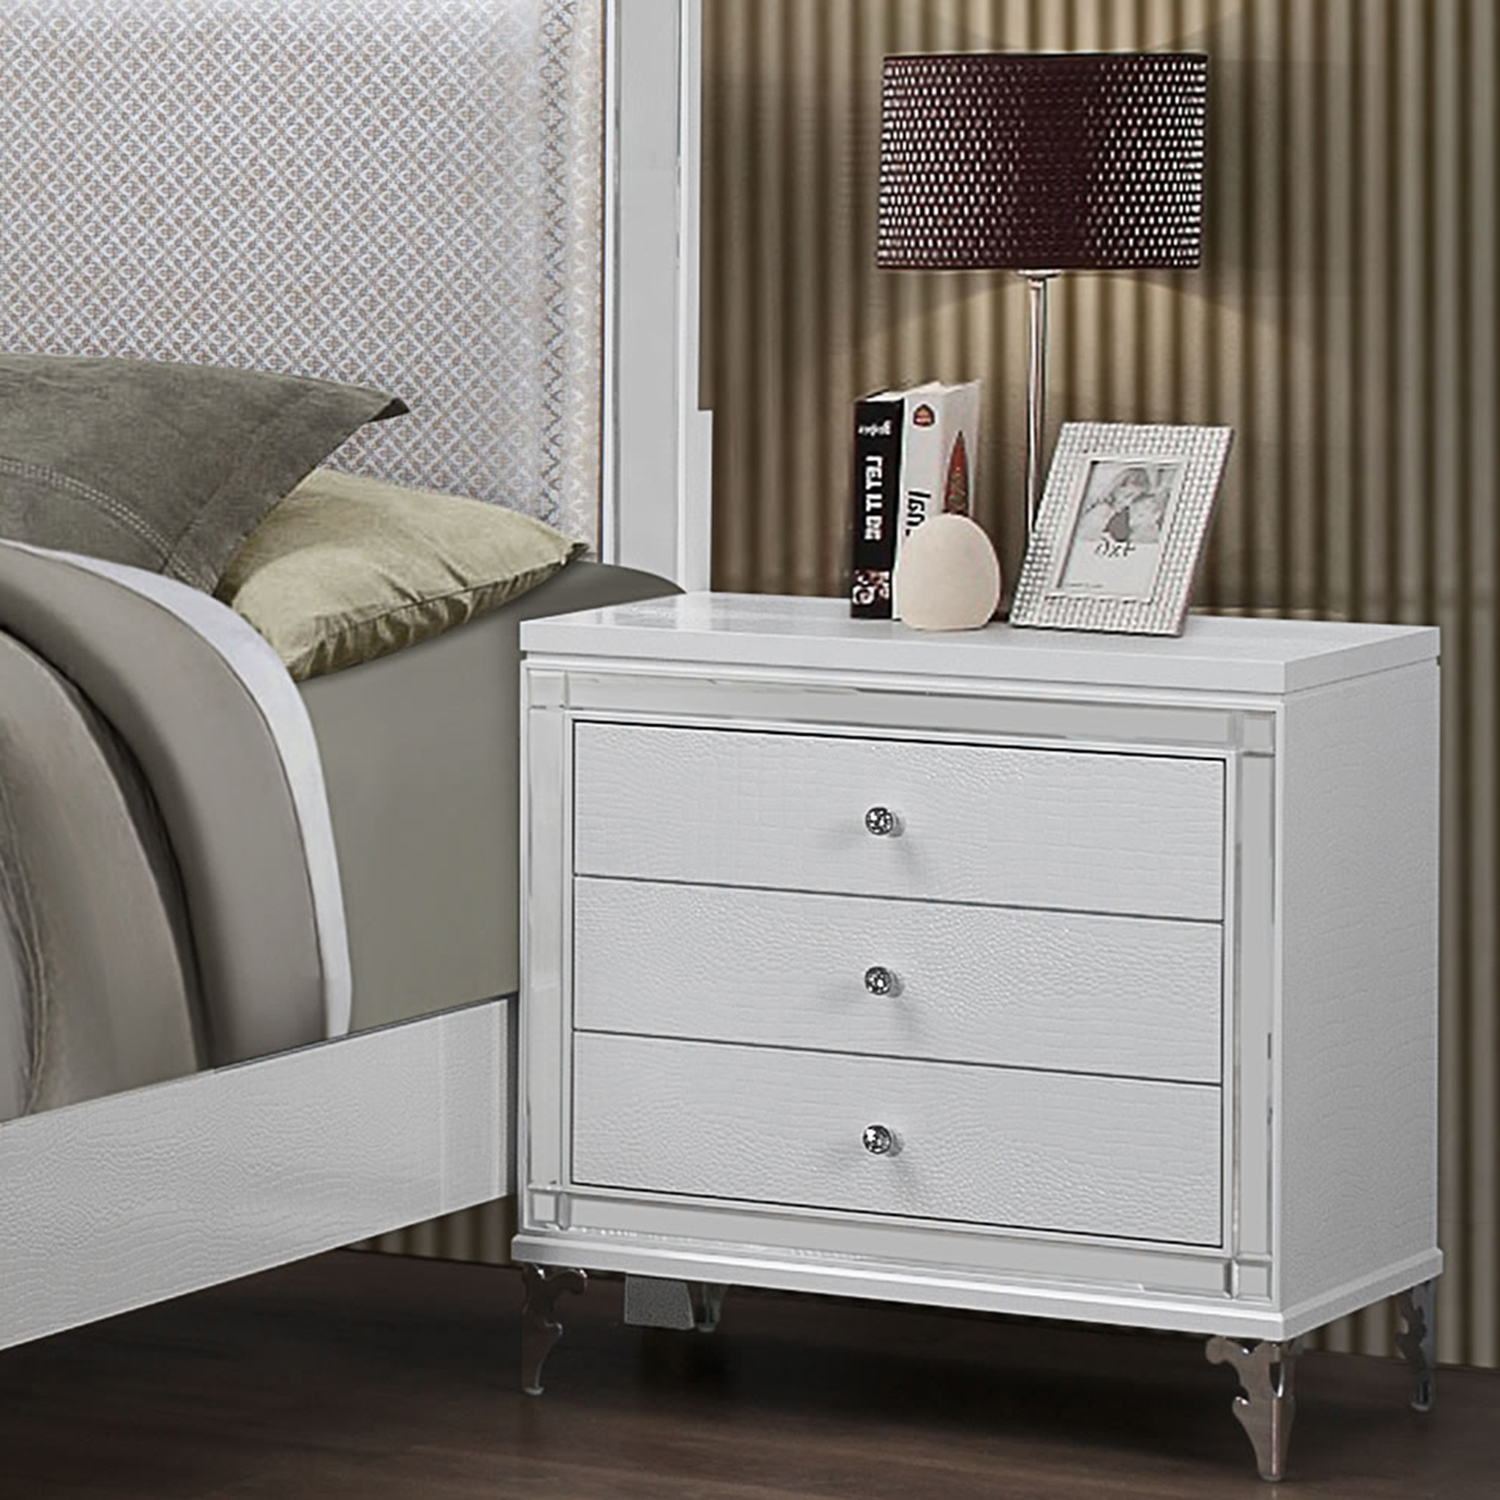 Catalina Nightstand in Metallic White - GLO-CATALINA-NS-MET-WH-M